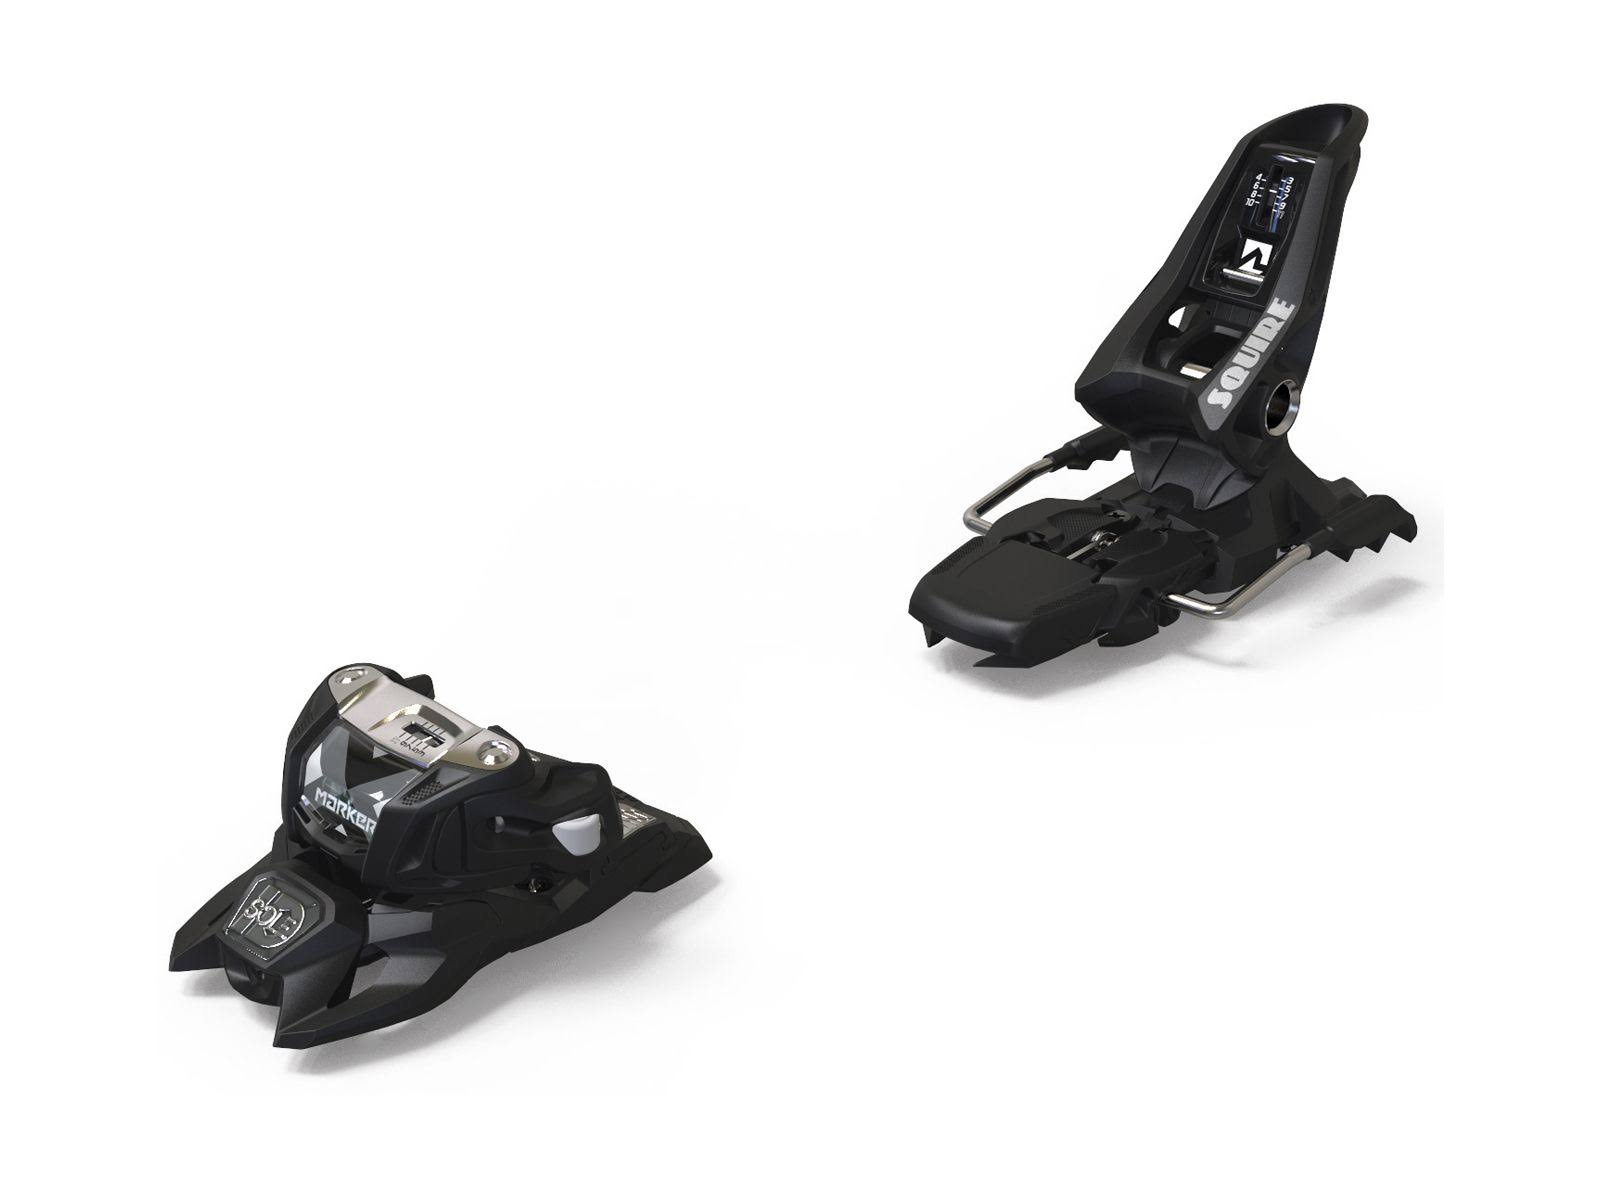 Marker Squire 11 Ski Bindings - 110mm, Black